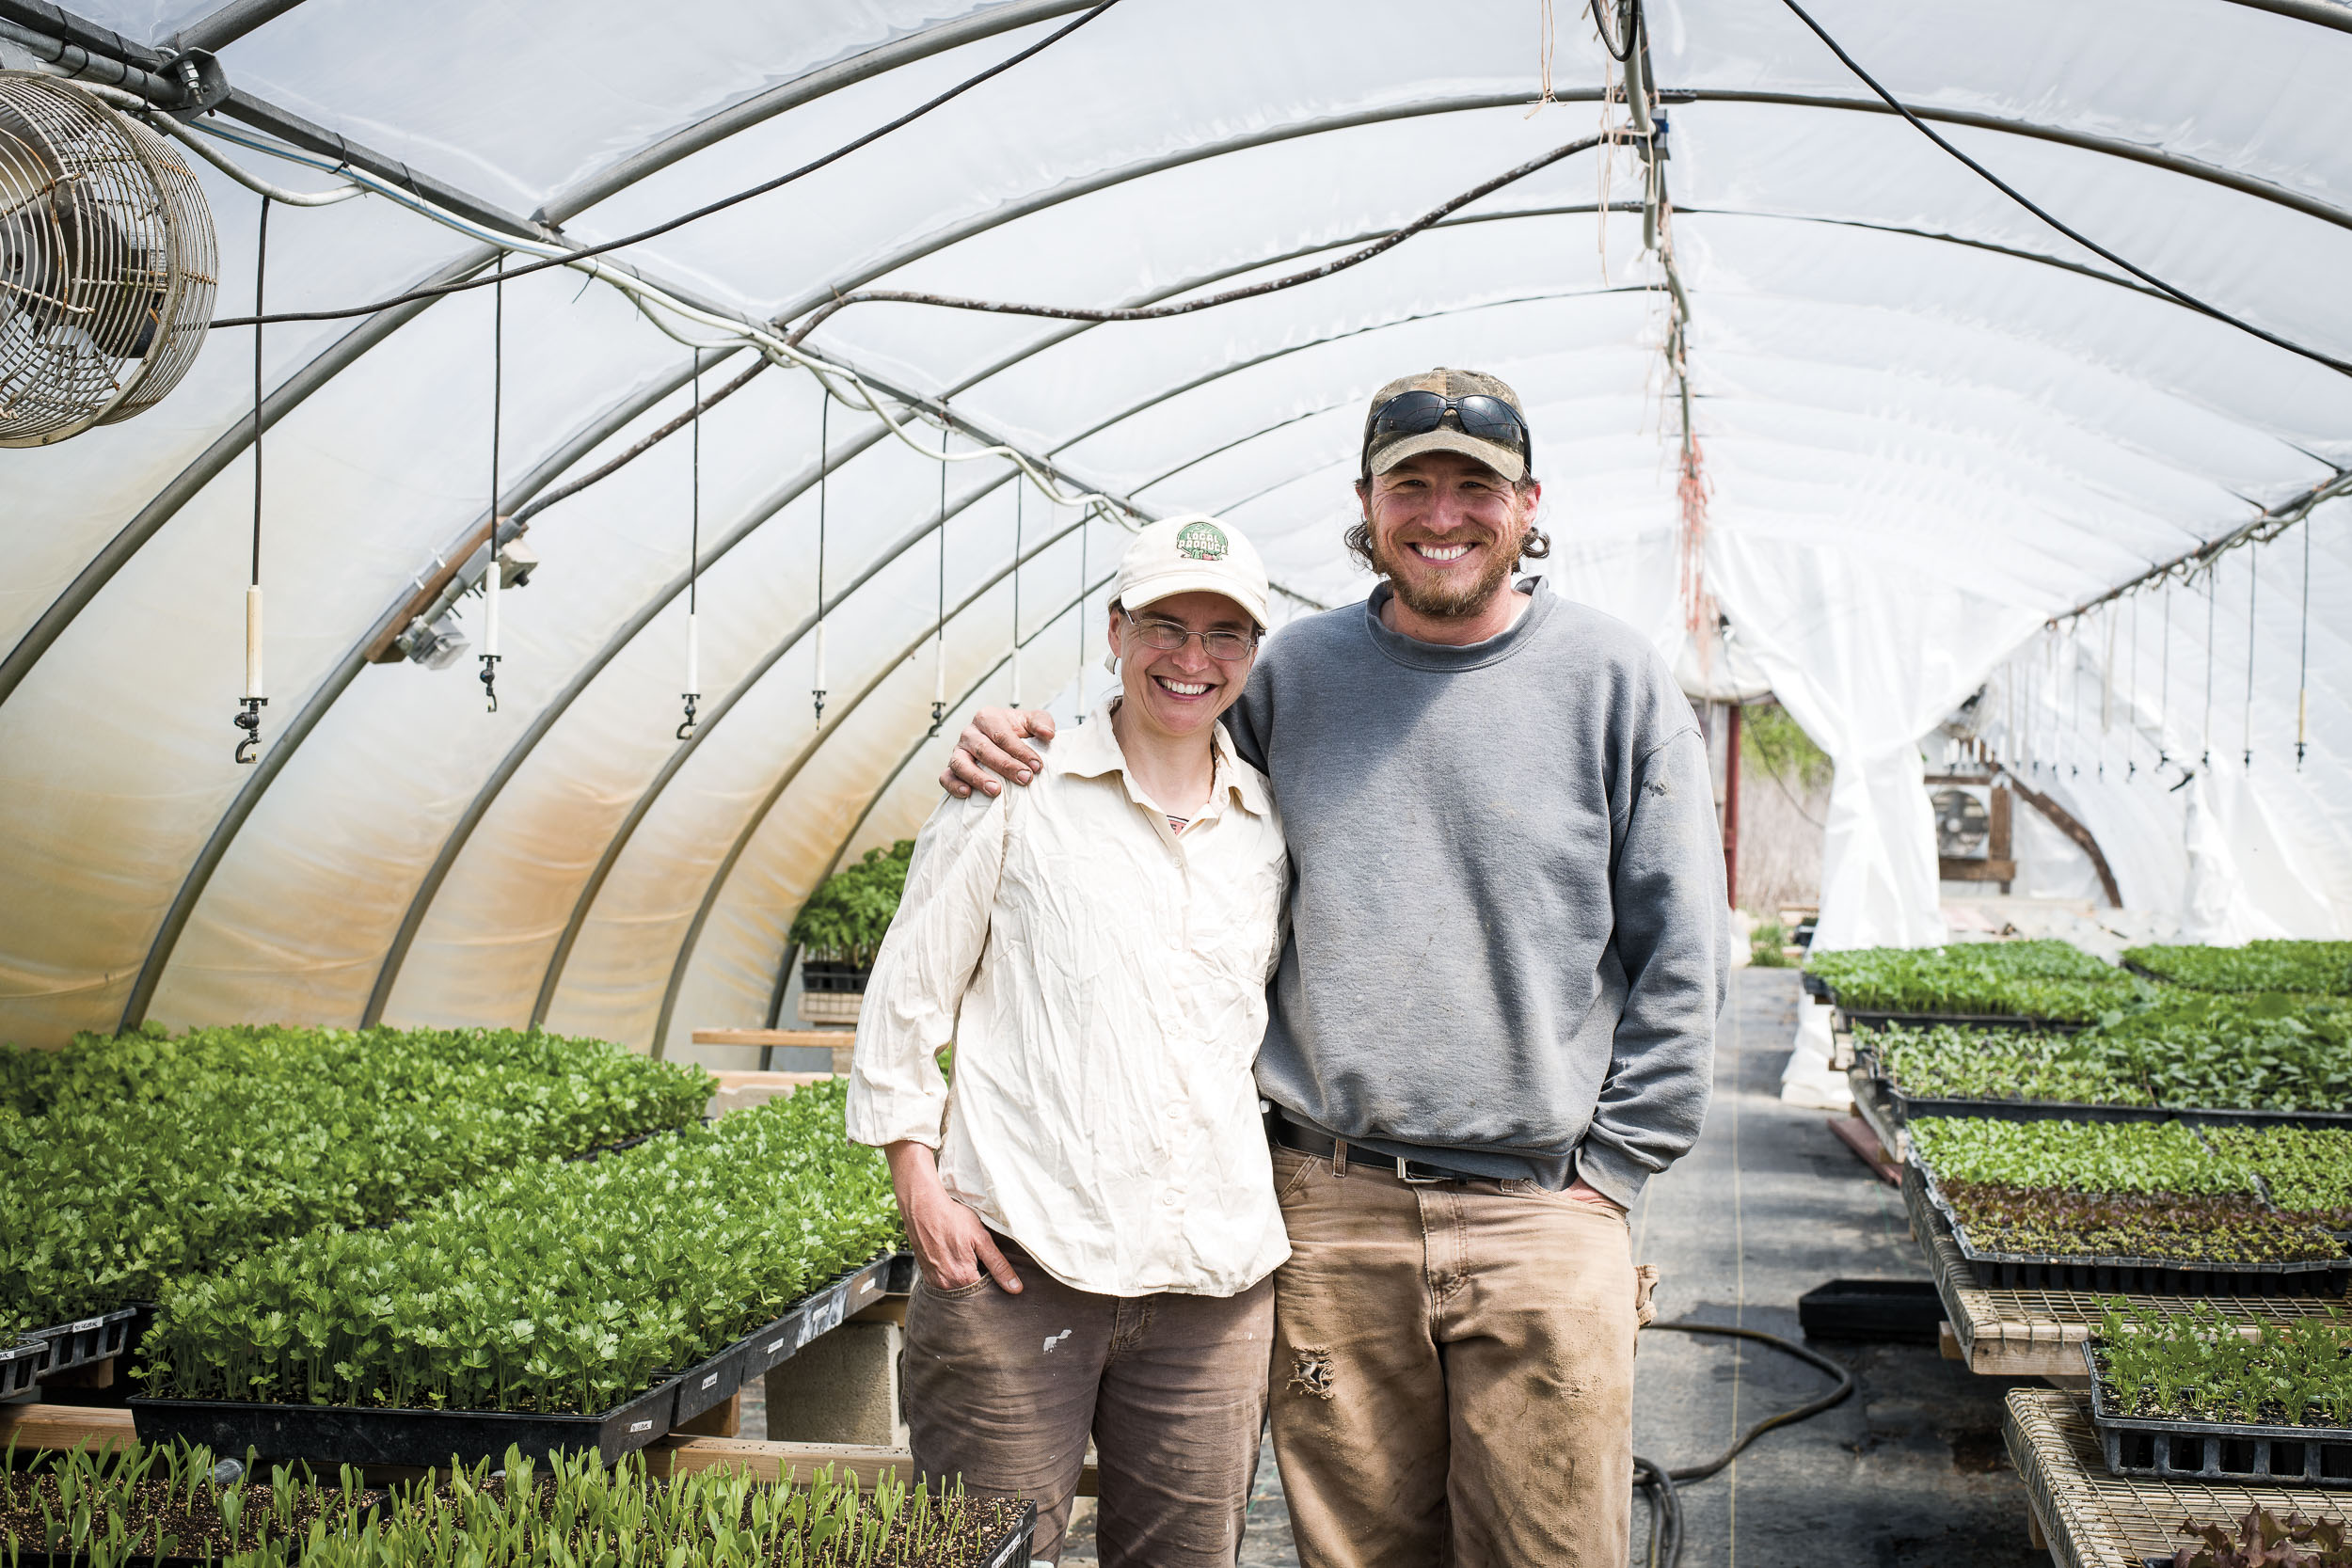 Emily and Ben Jackle built their expertise through internships in other states, then established Mile Creek Farm in New Lebanon, OH. Now they mentor newbie farmers.